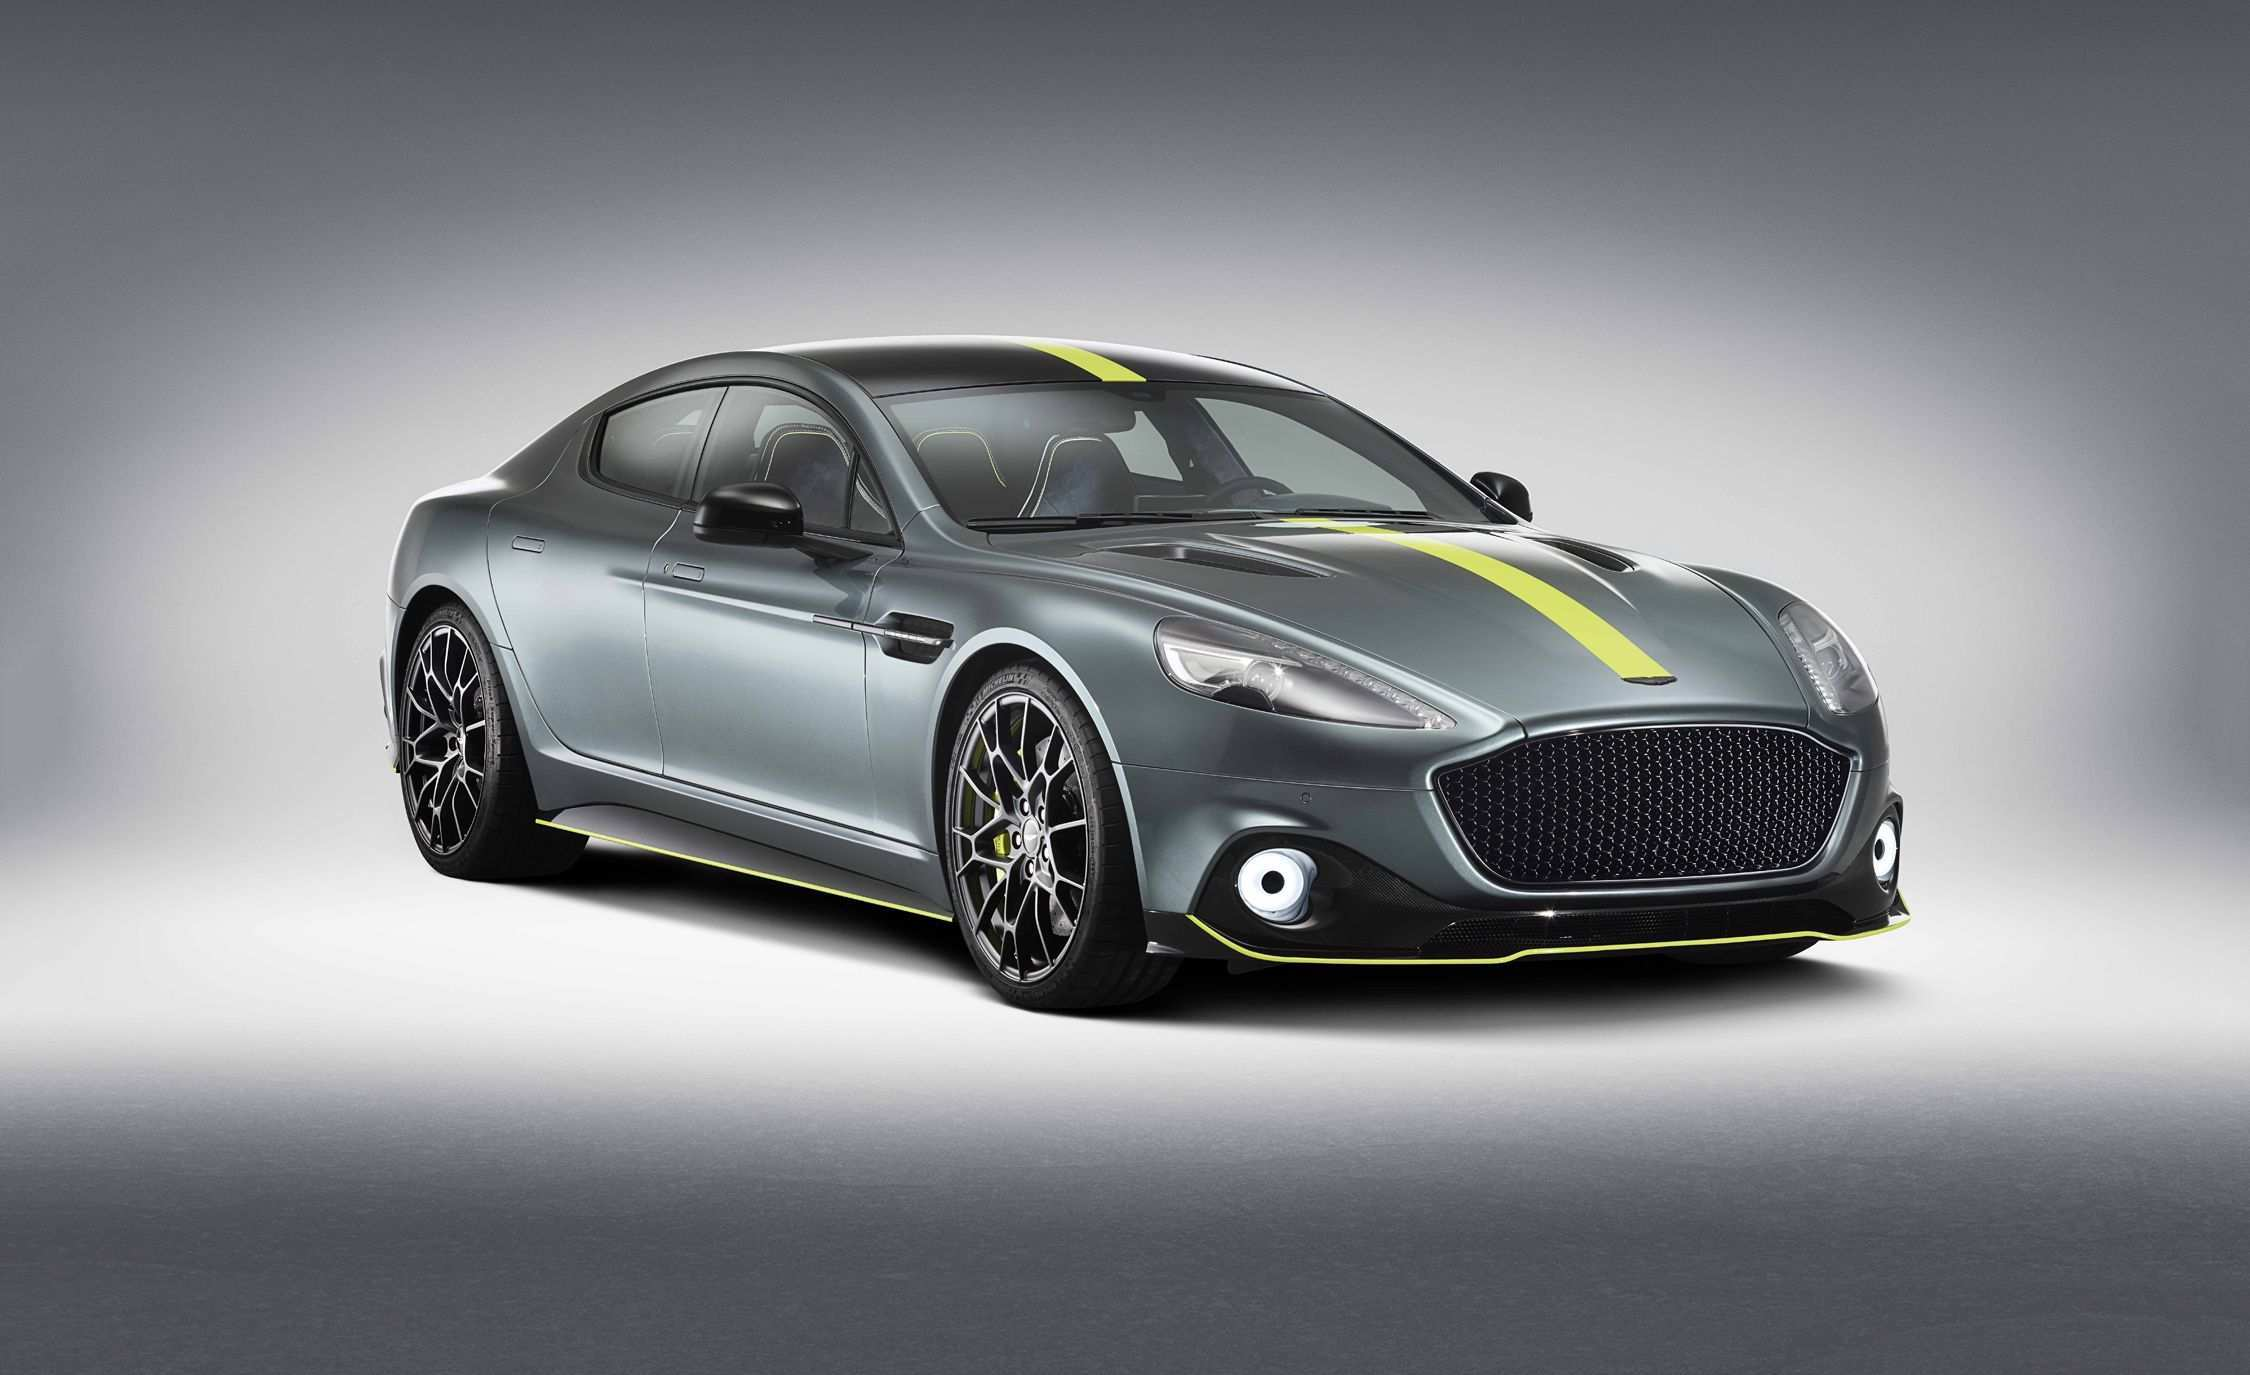 74 Concept of 2019 Aston Martin Rapide Exterior and Interior by 2019 Aston Martin Rapide